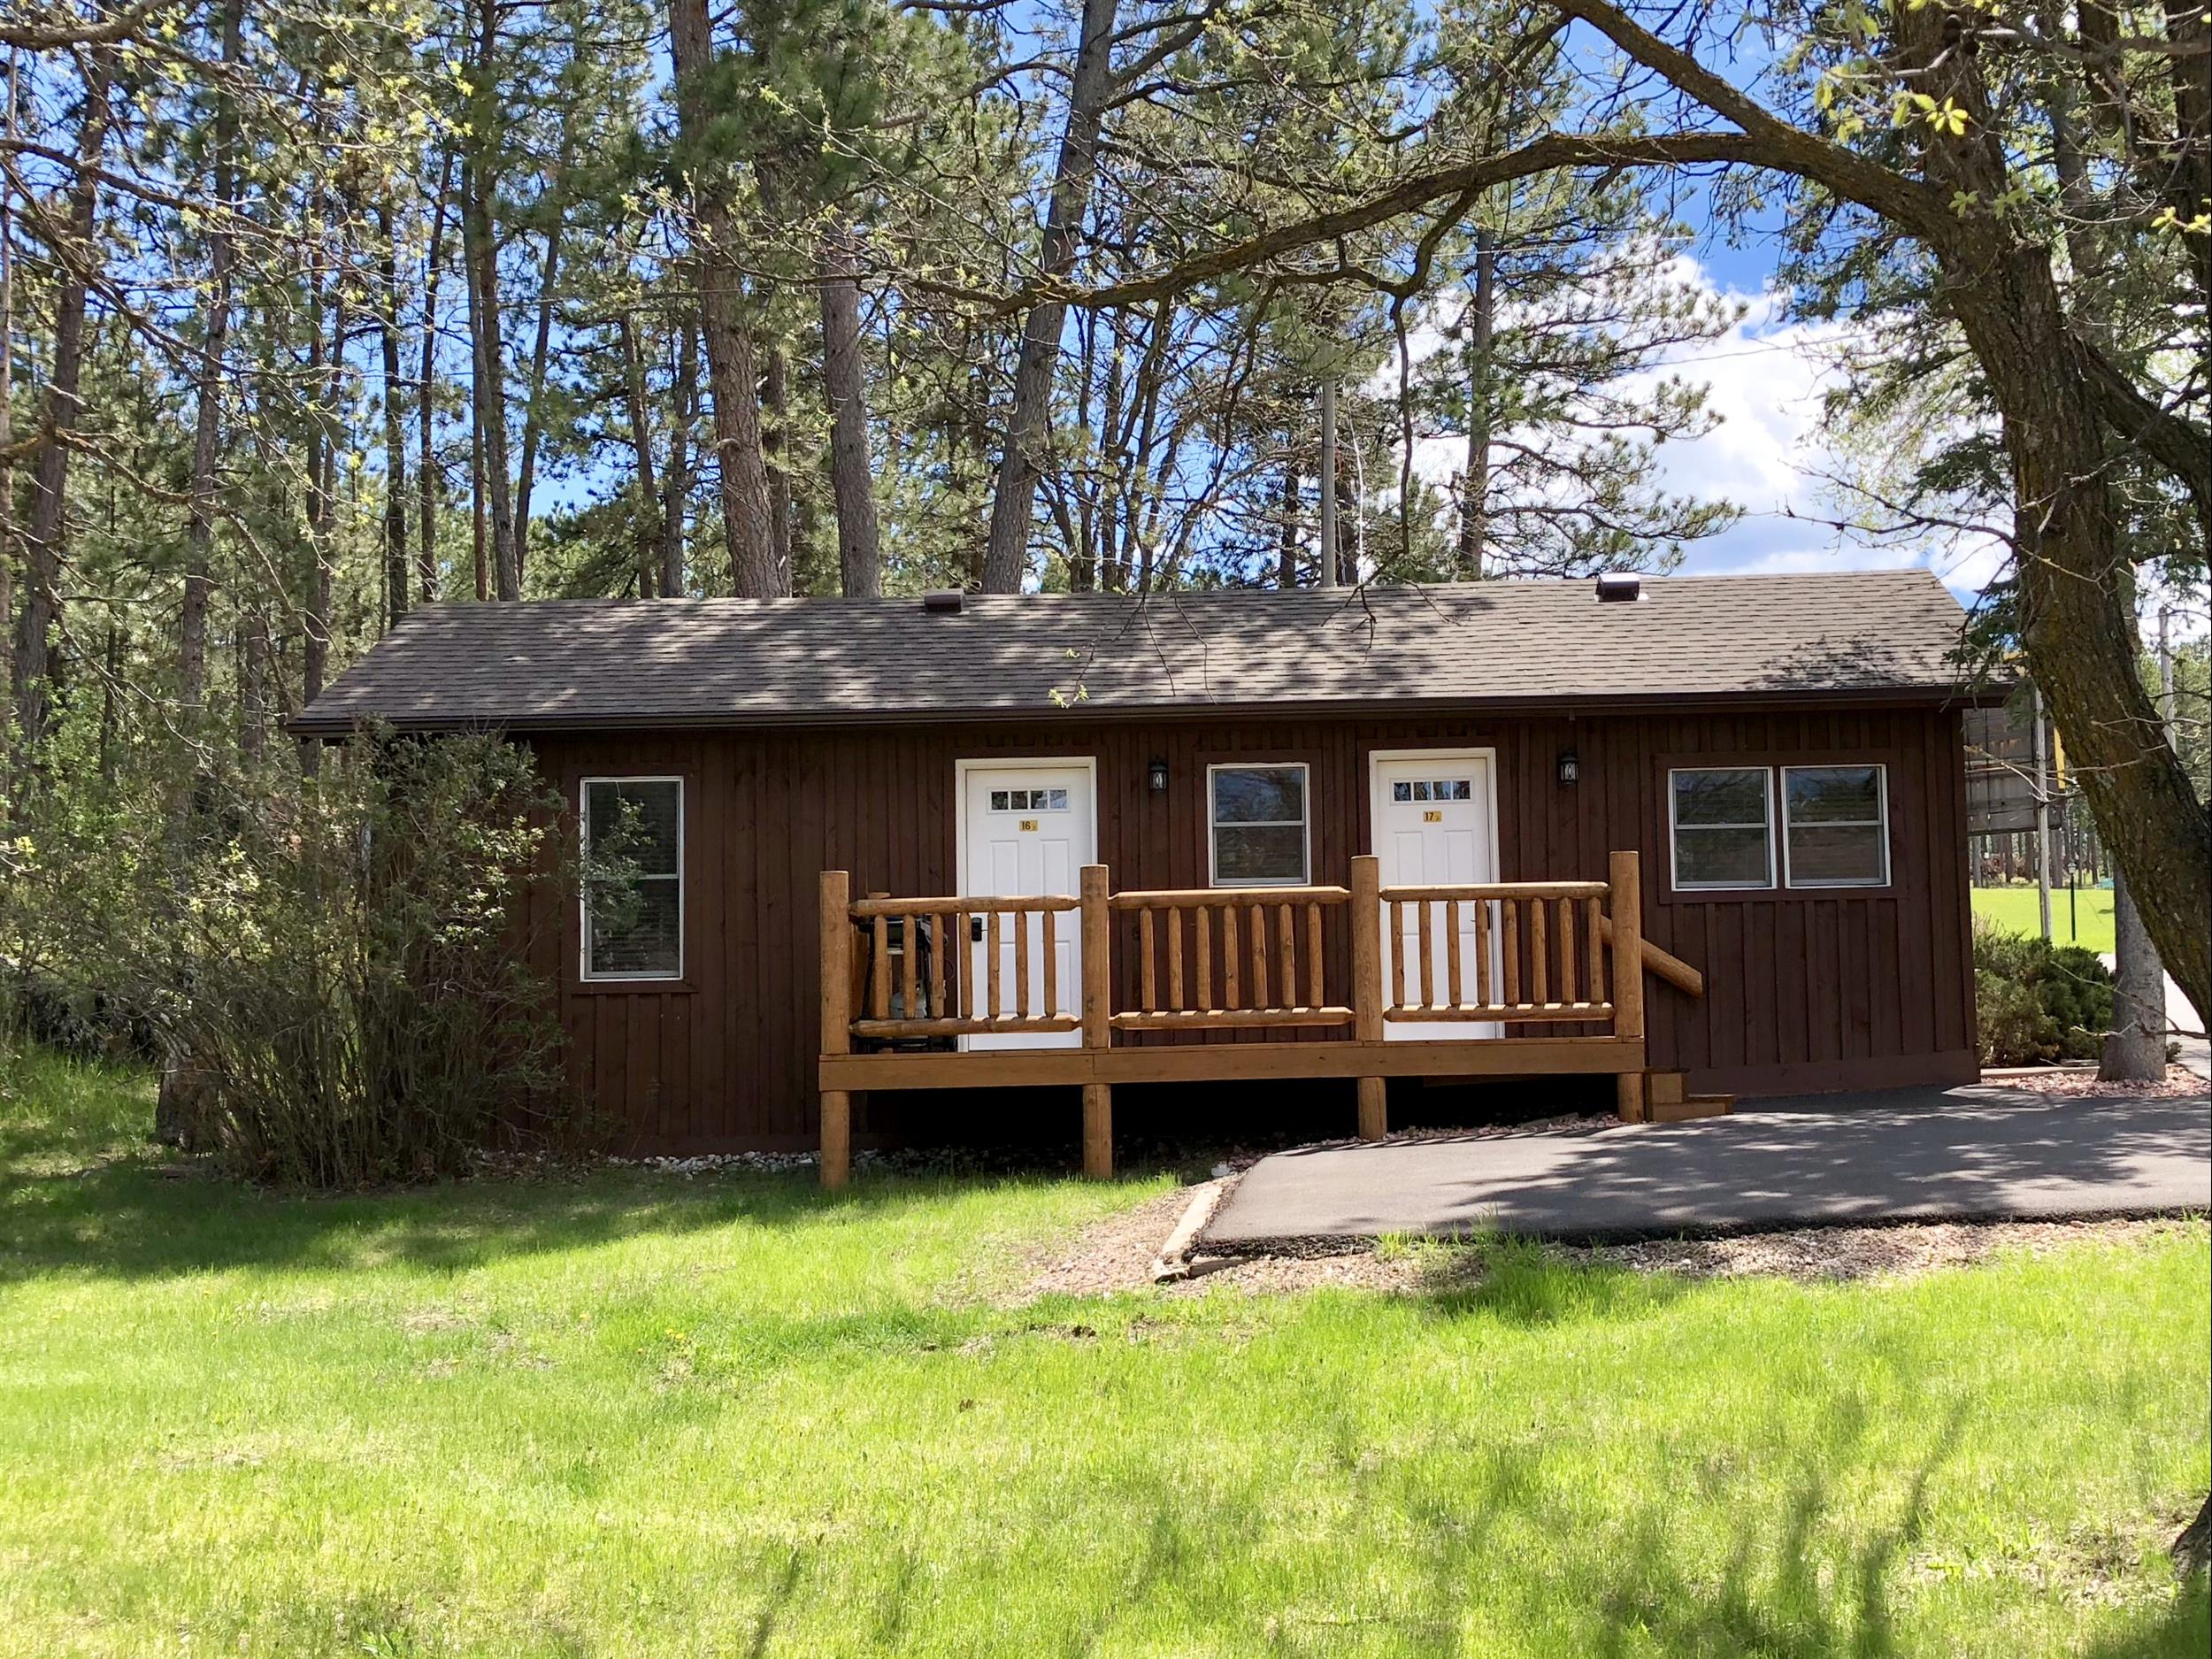 Image for 16 - 17 Coon Hollow Family Cabin, Sleeps 7